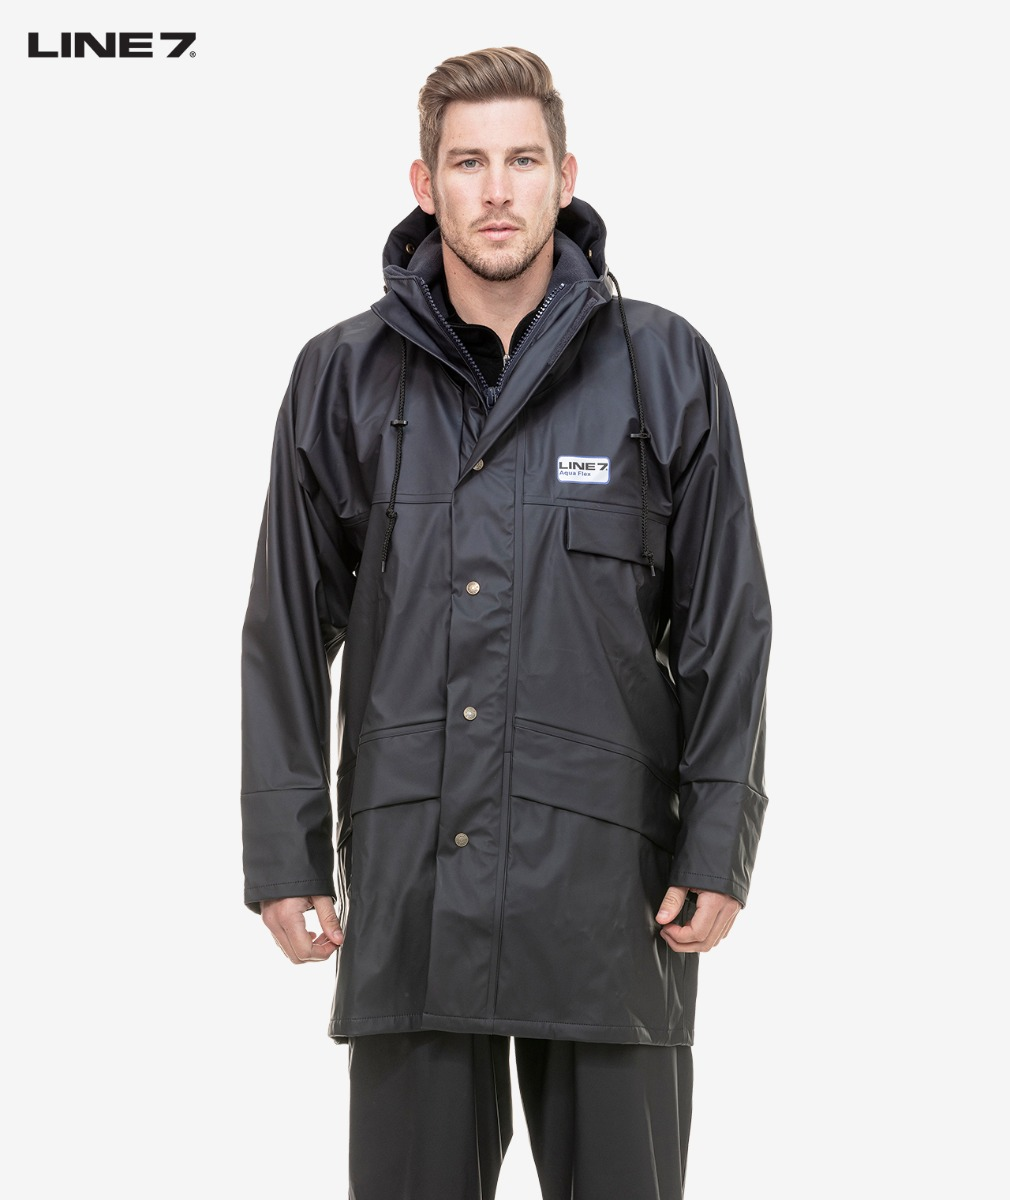 Line 7 Men's Aqua Flex Waterproof Jacket